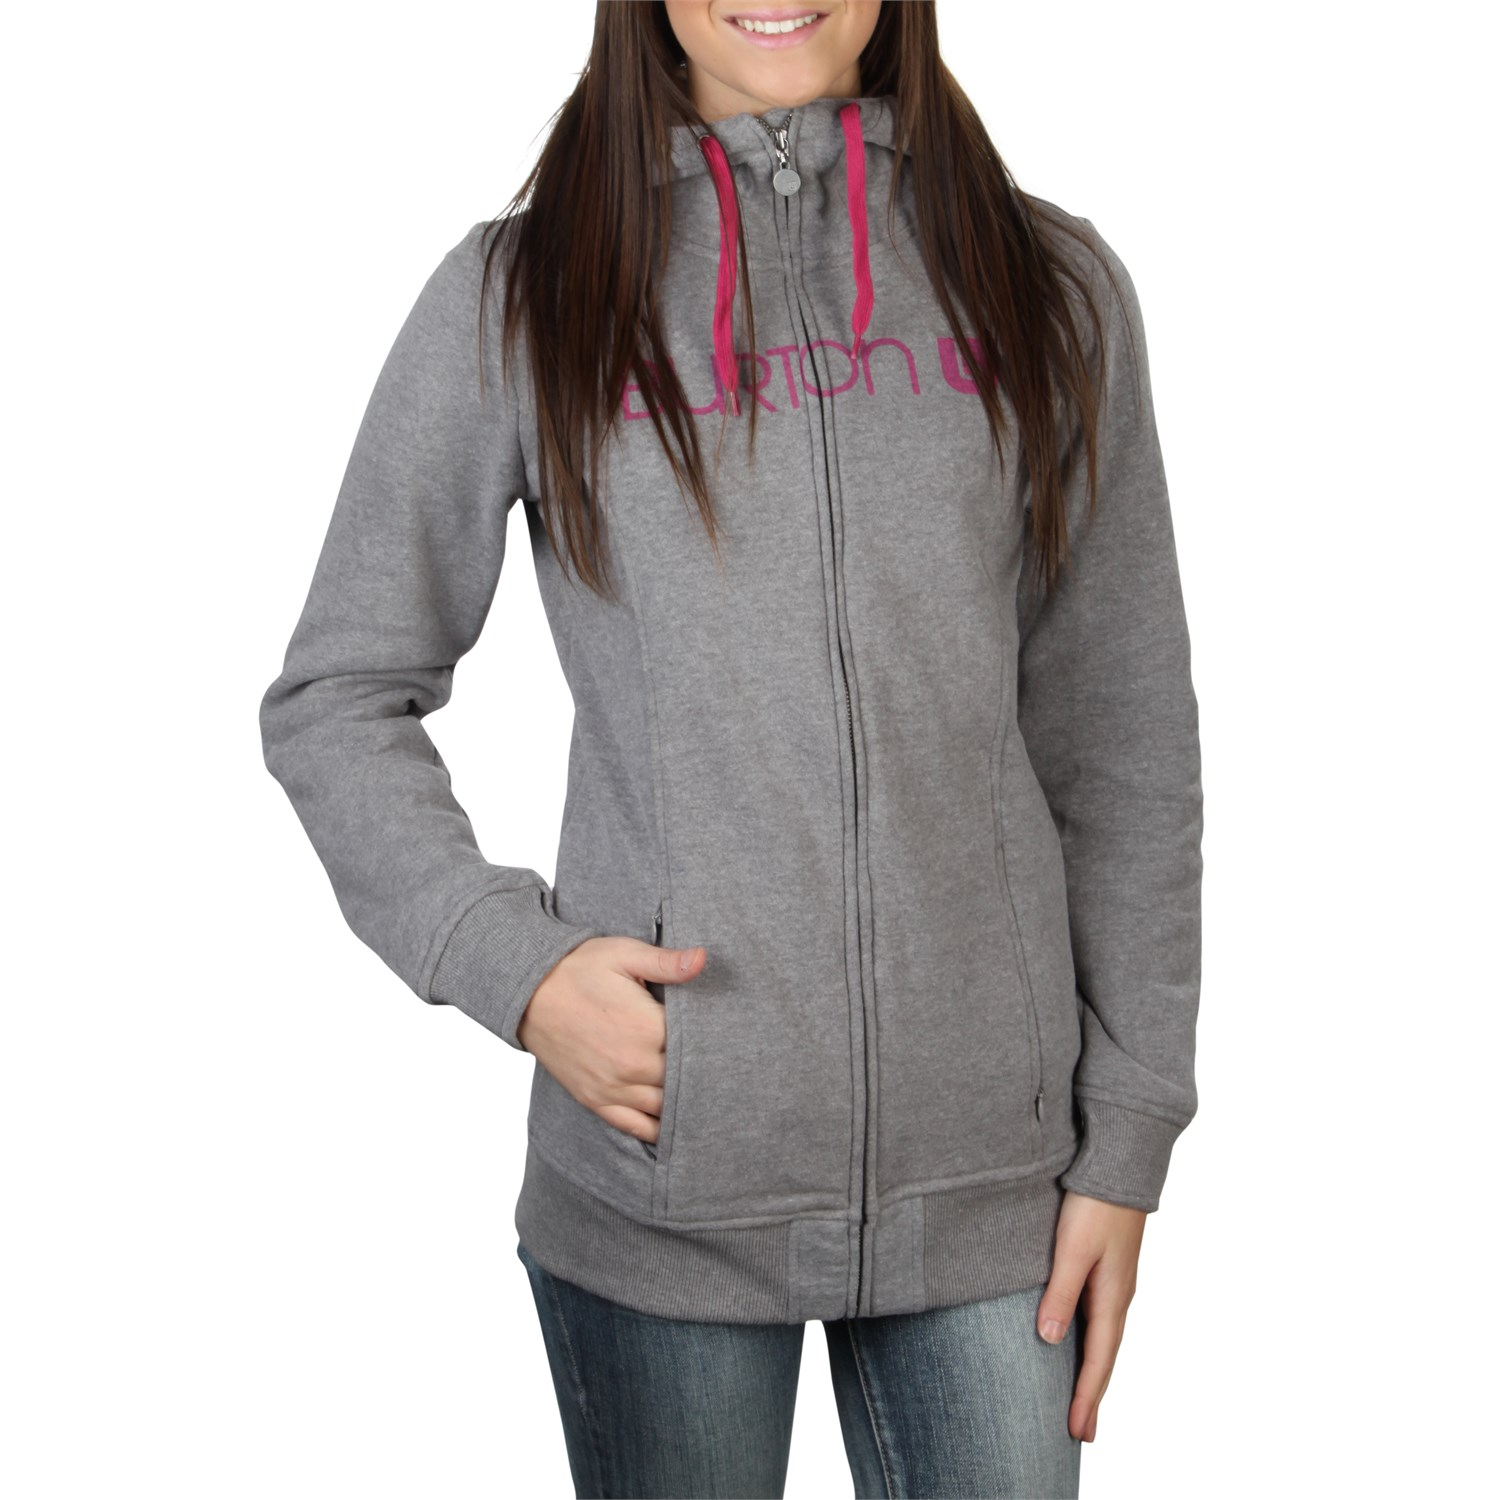 minxy online burton p zaini coprispalla amp donna hoodie pile felpa prezzo di heather prezzofelpa sleeperbello heatherburton giacche dove sleeper